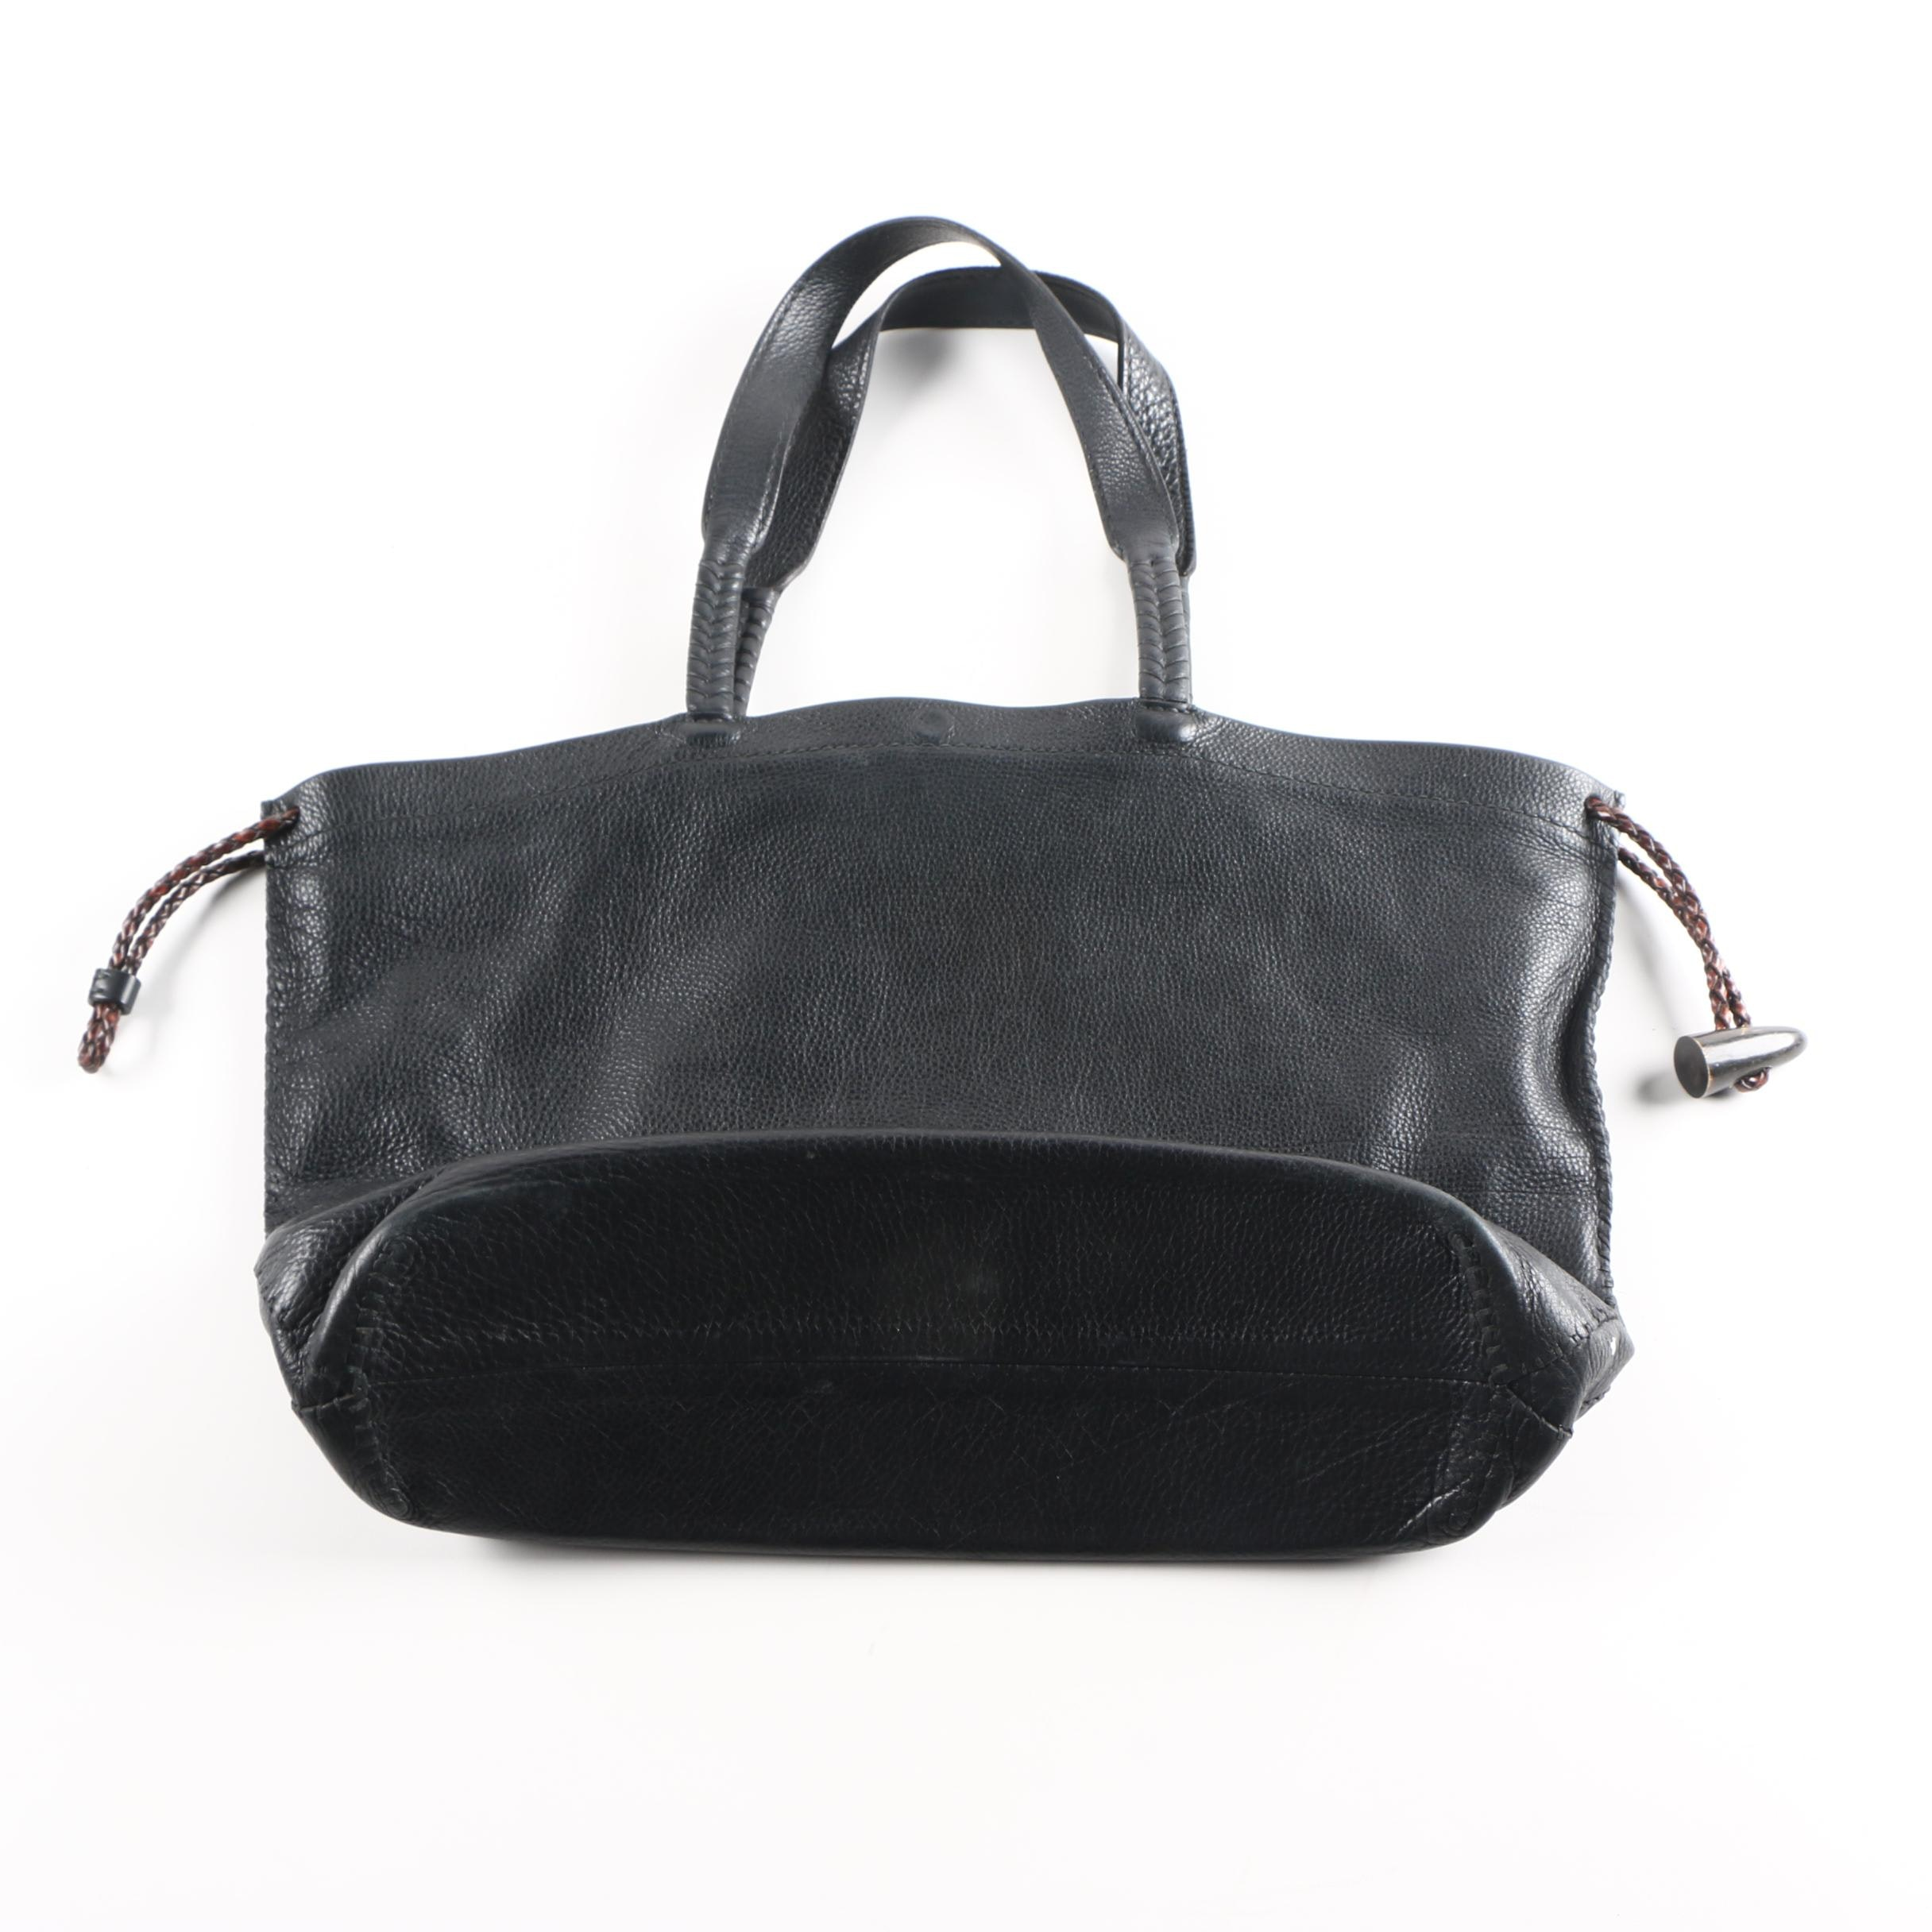 Henry Beguelin Black Leather Tote